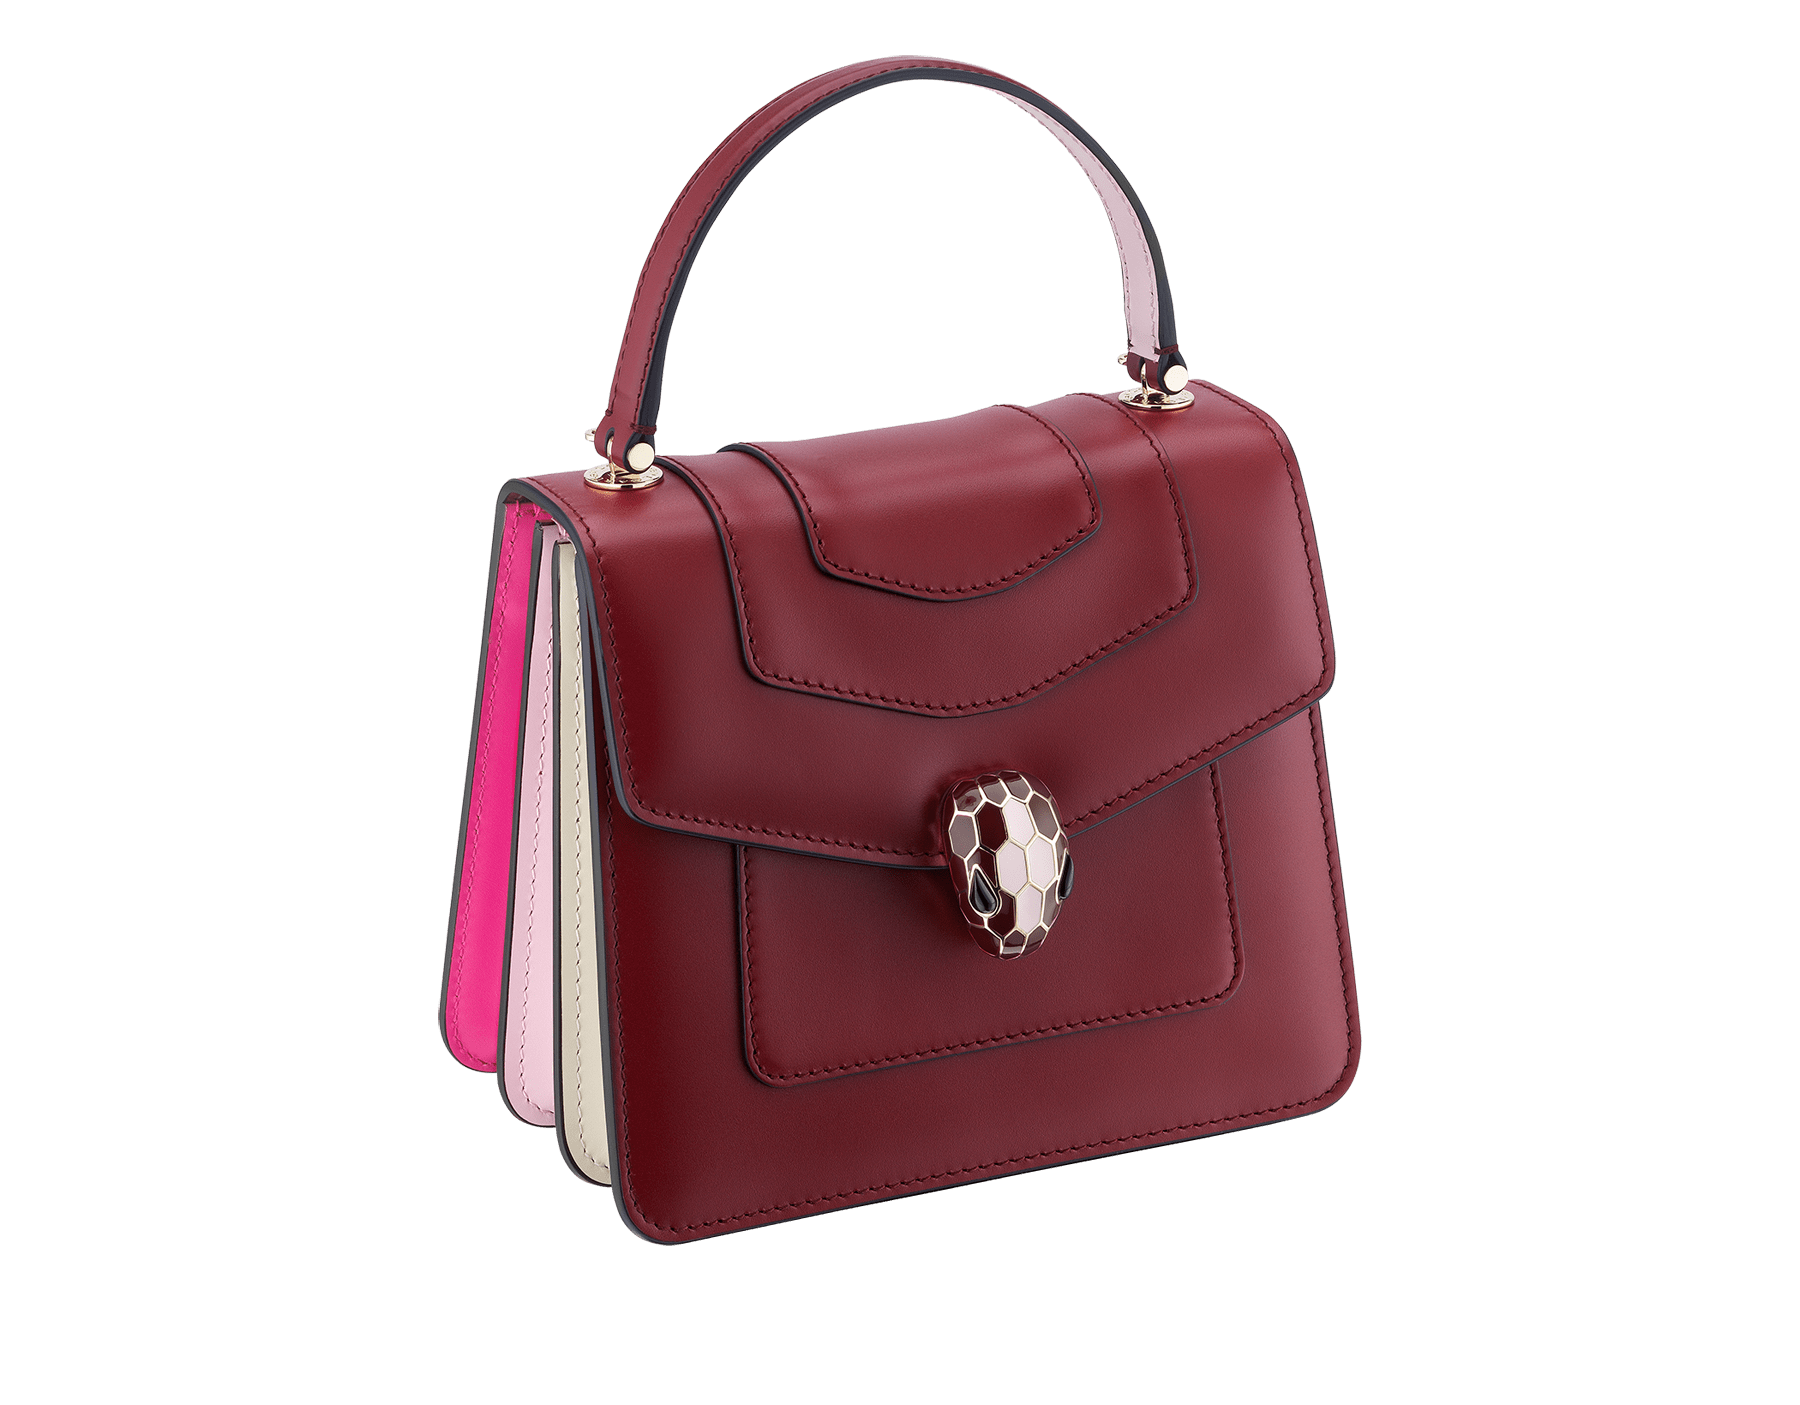 Serpenti Forever crossbody bag in Roman garnet calf leather, with flash amethyst, rosa di francia and white agate calf leather sides. Iconic snakehead closure in light gold plated brass embellished with Roman garnet and rosa di francia enamel and black onyx eyes. 288891 image 2